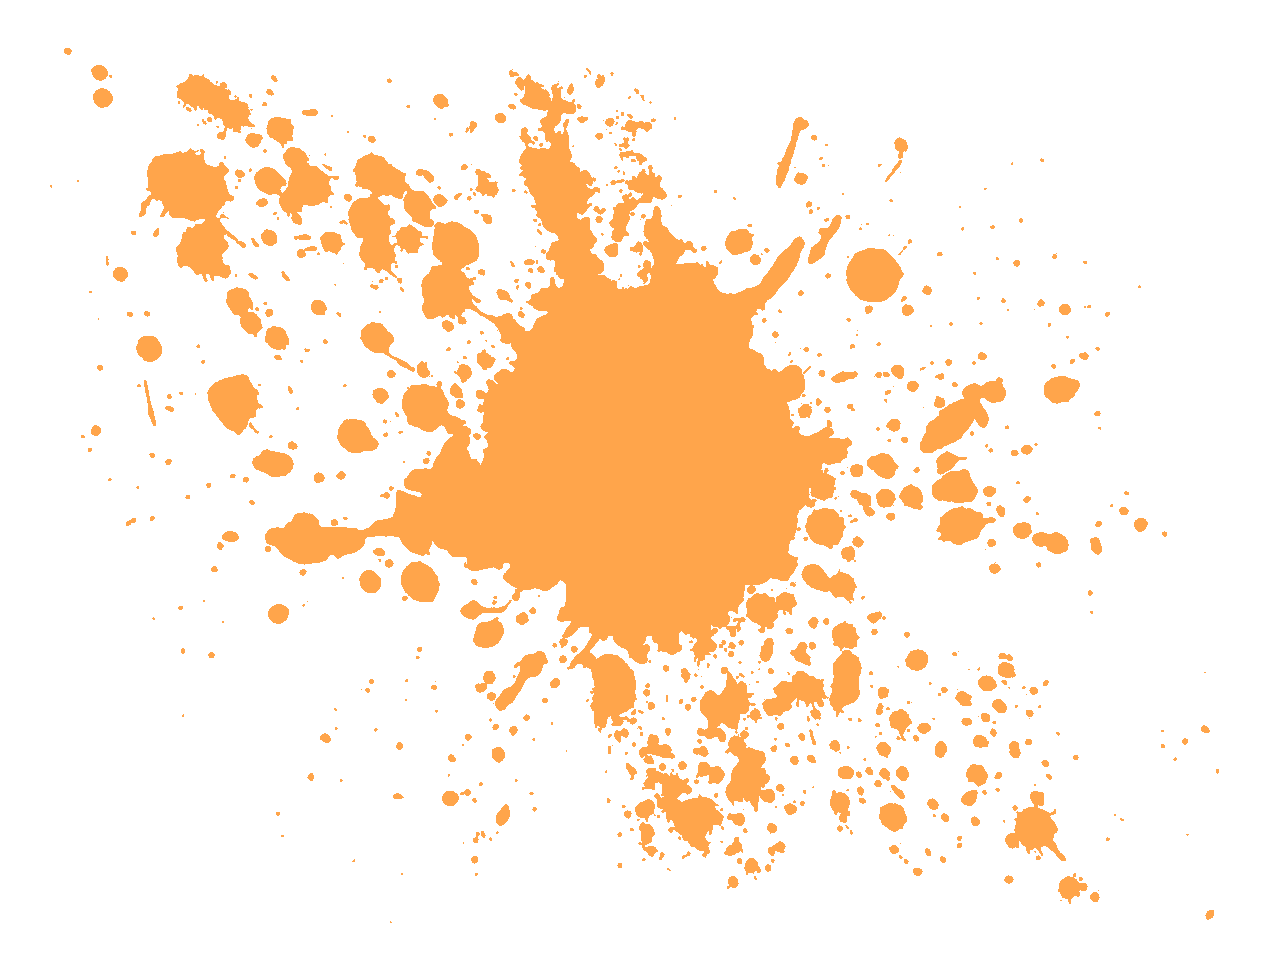 Background effects png. Orange flare download image